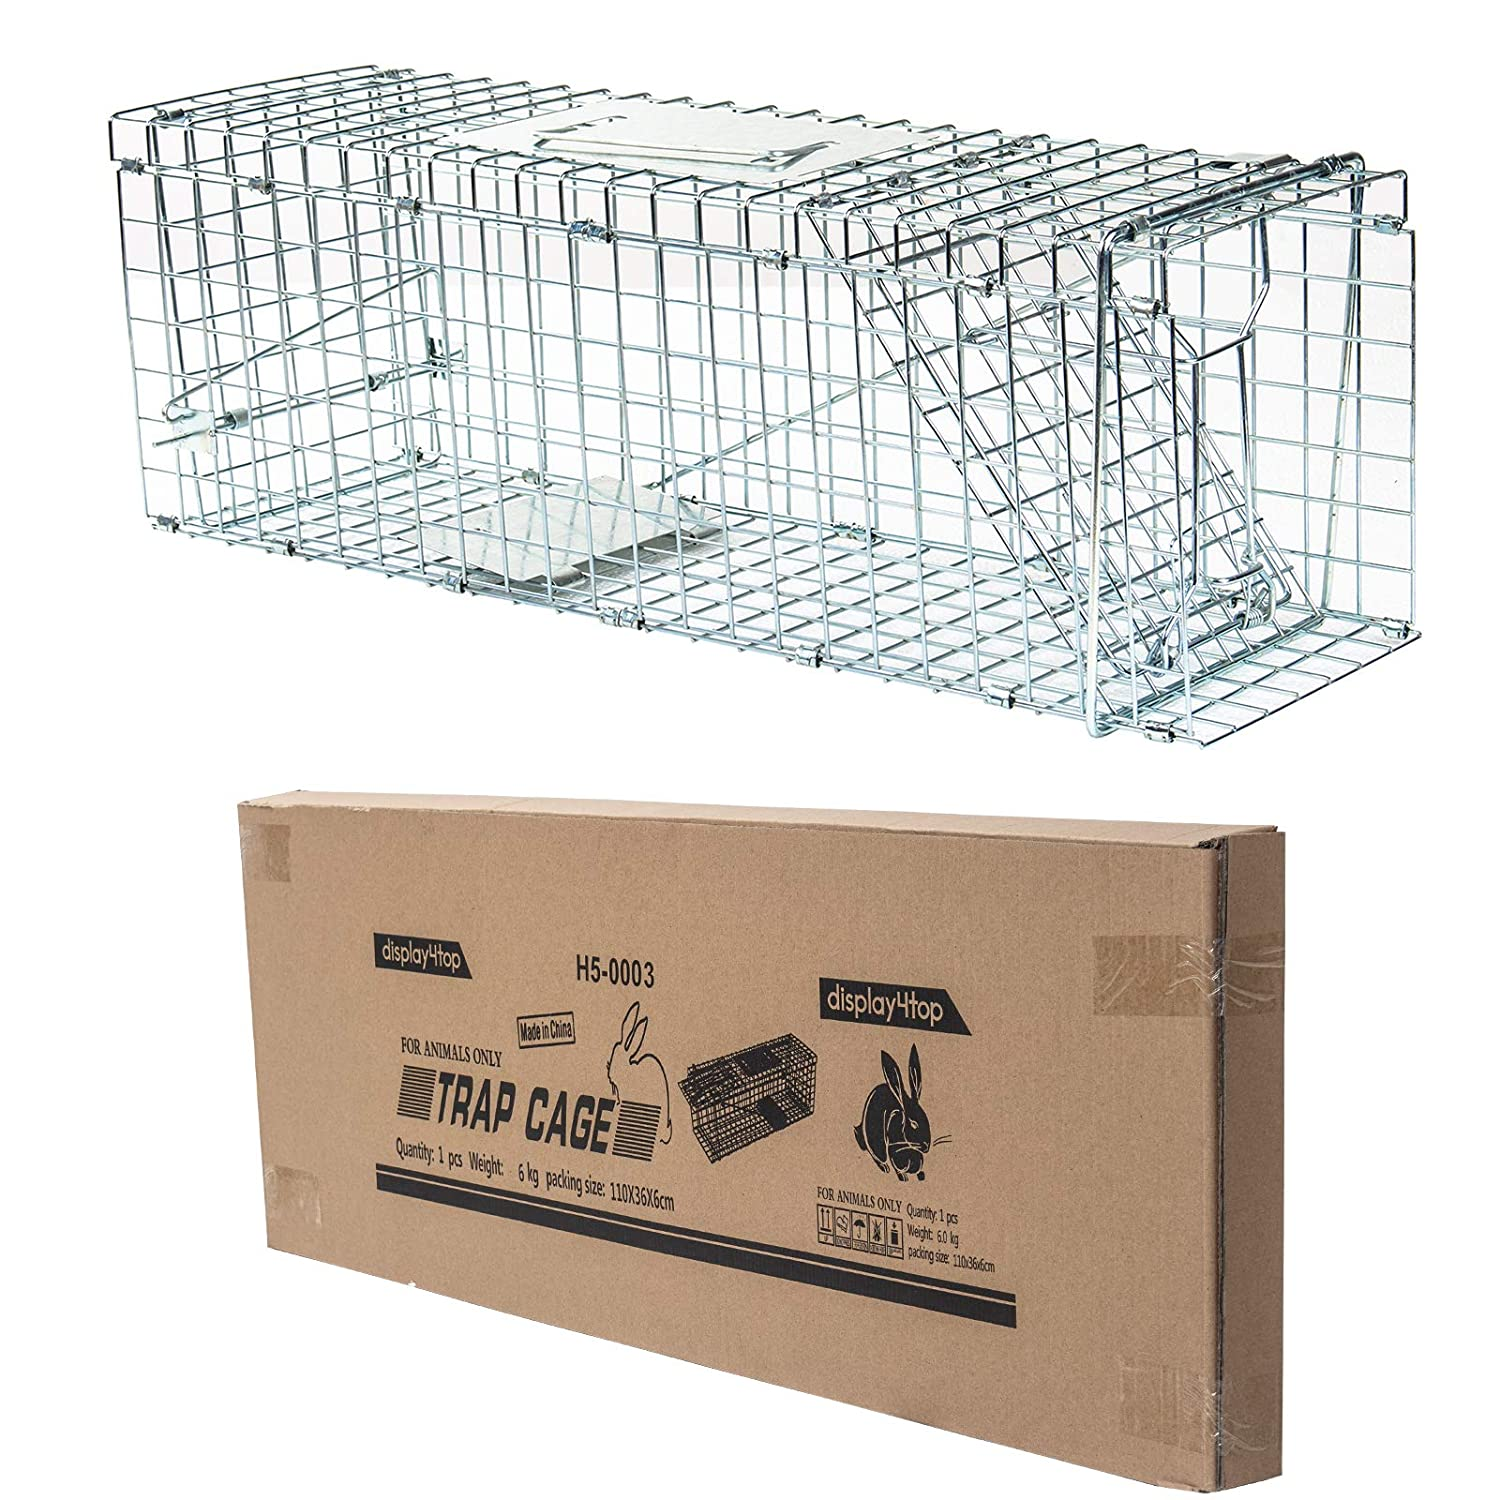 D4P Display4top Animal Trap Cage Trampa de Captura de Animales ...